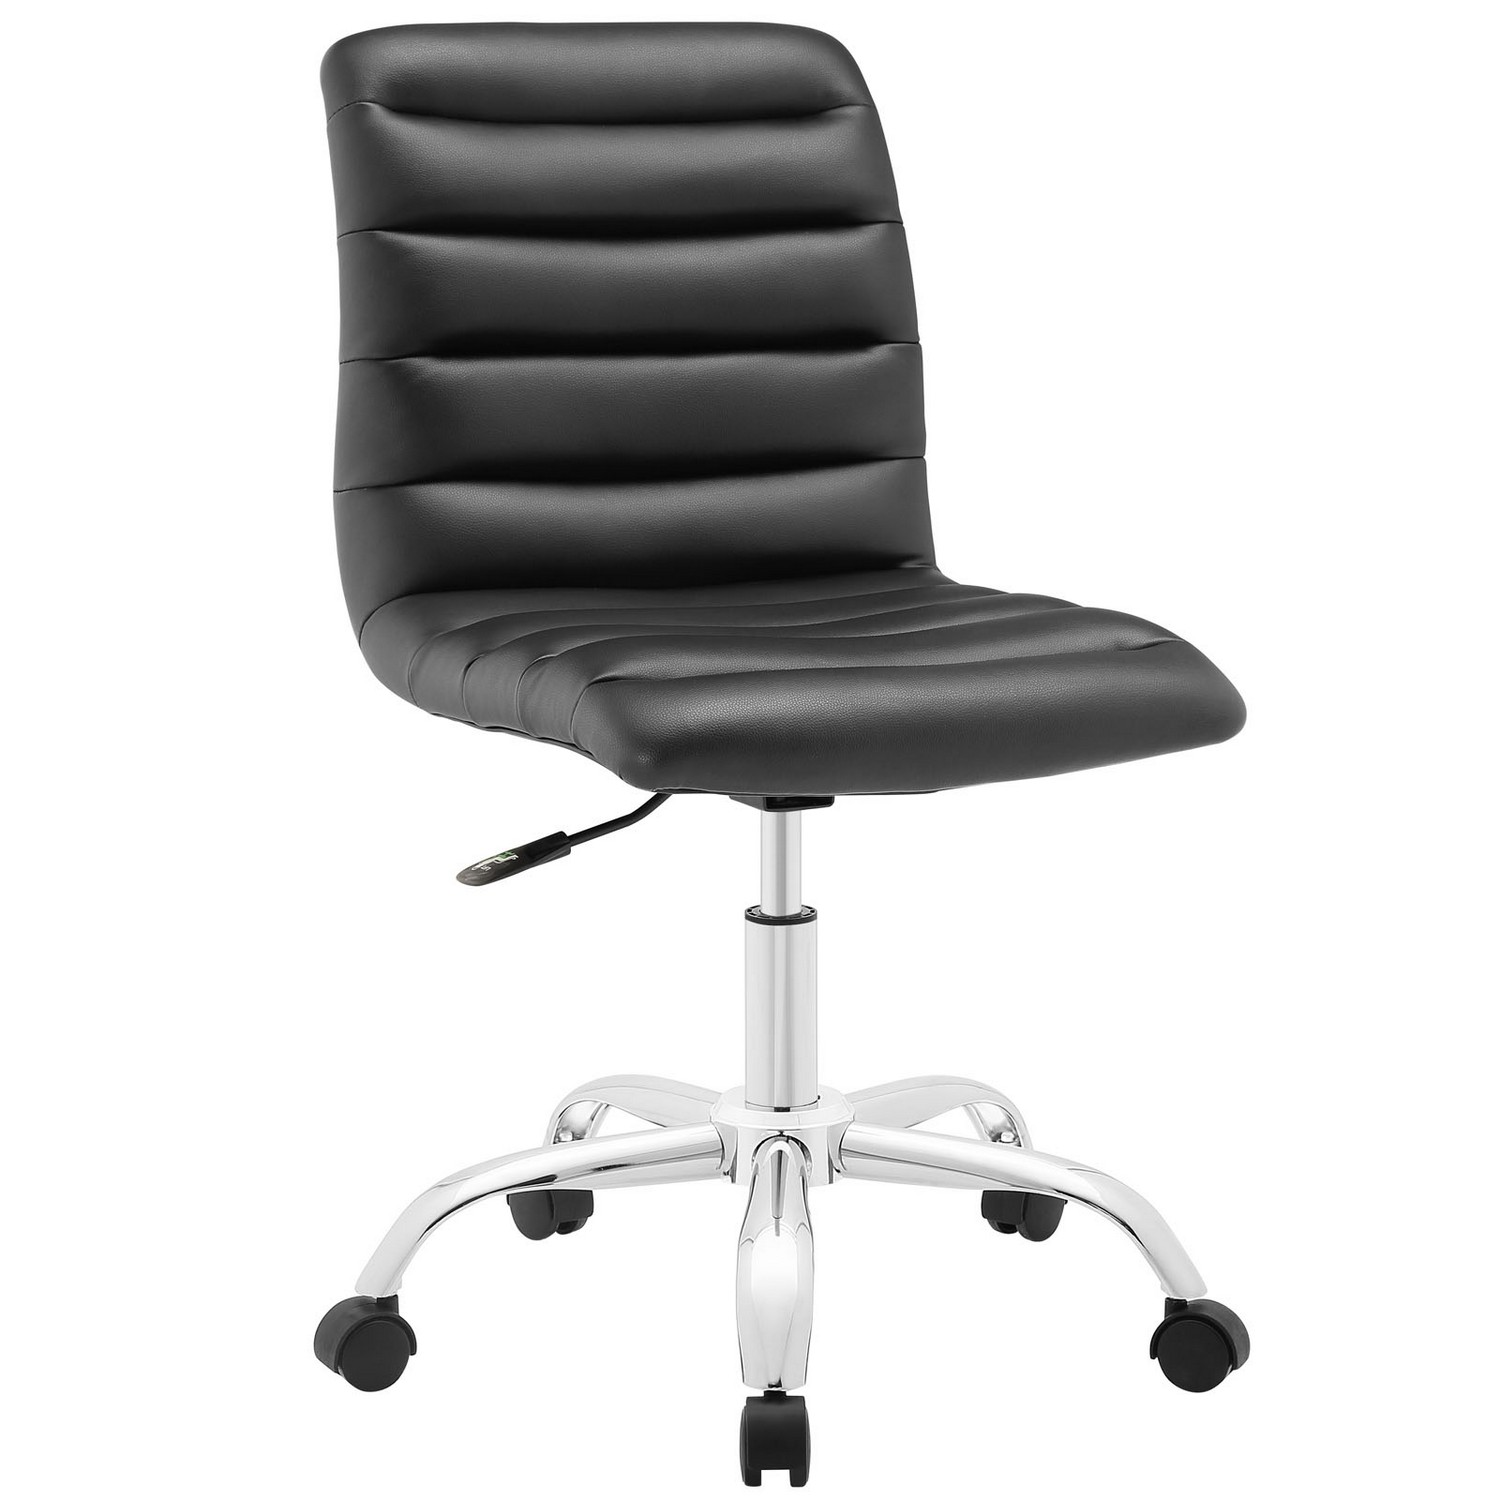 Modway Ripple Armless Mid Back Office Chair - Black